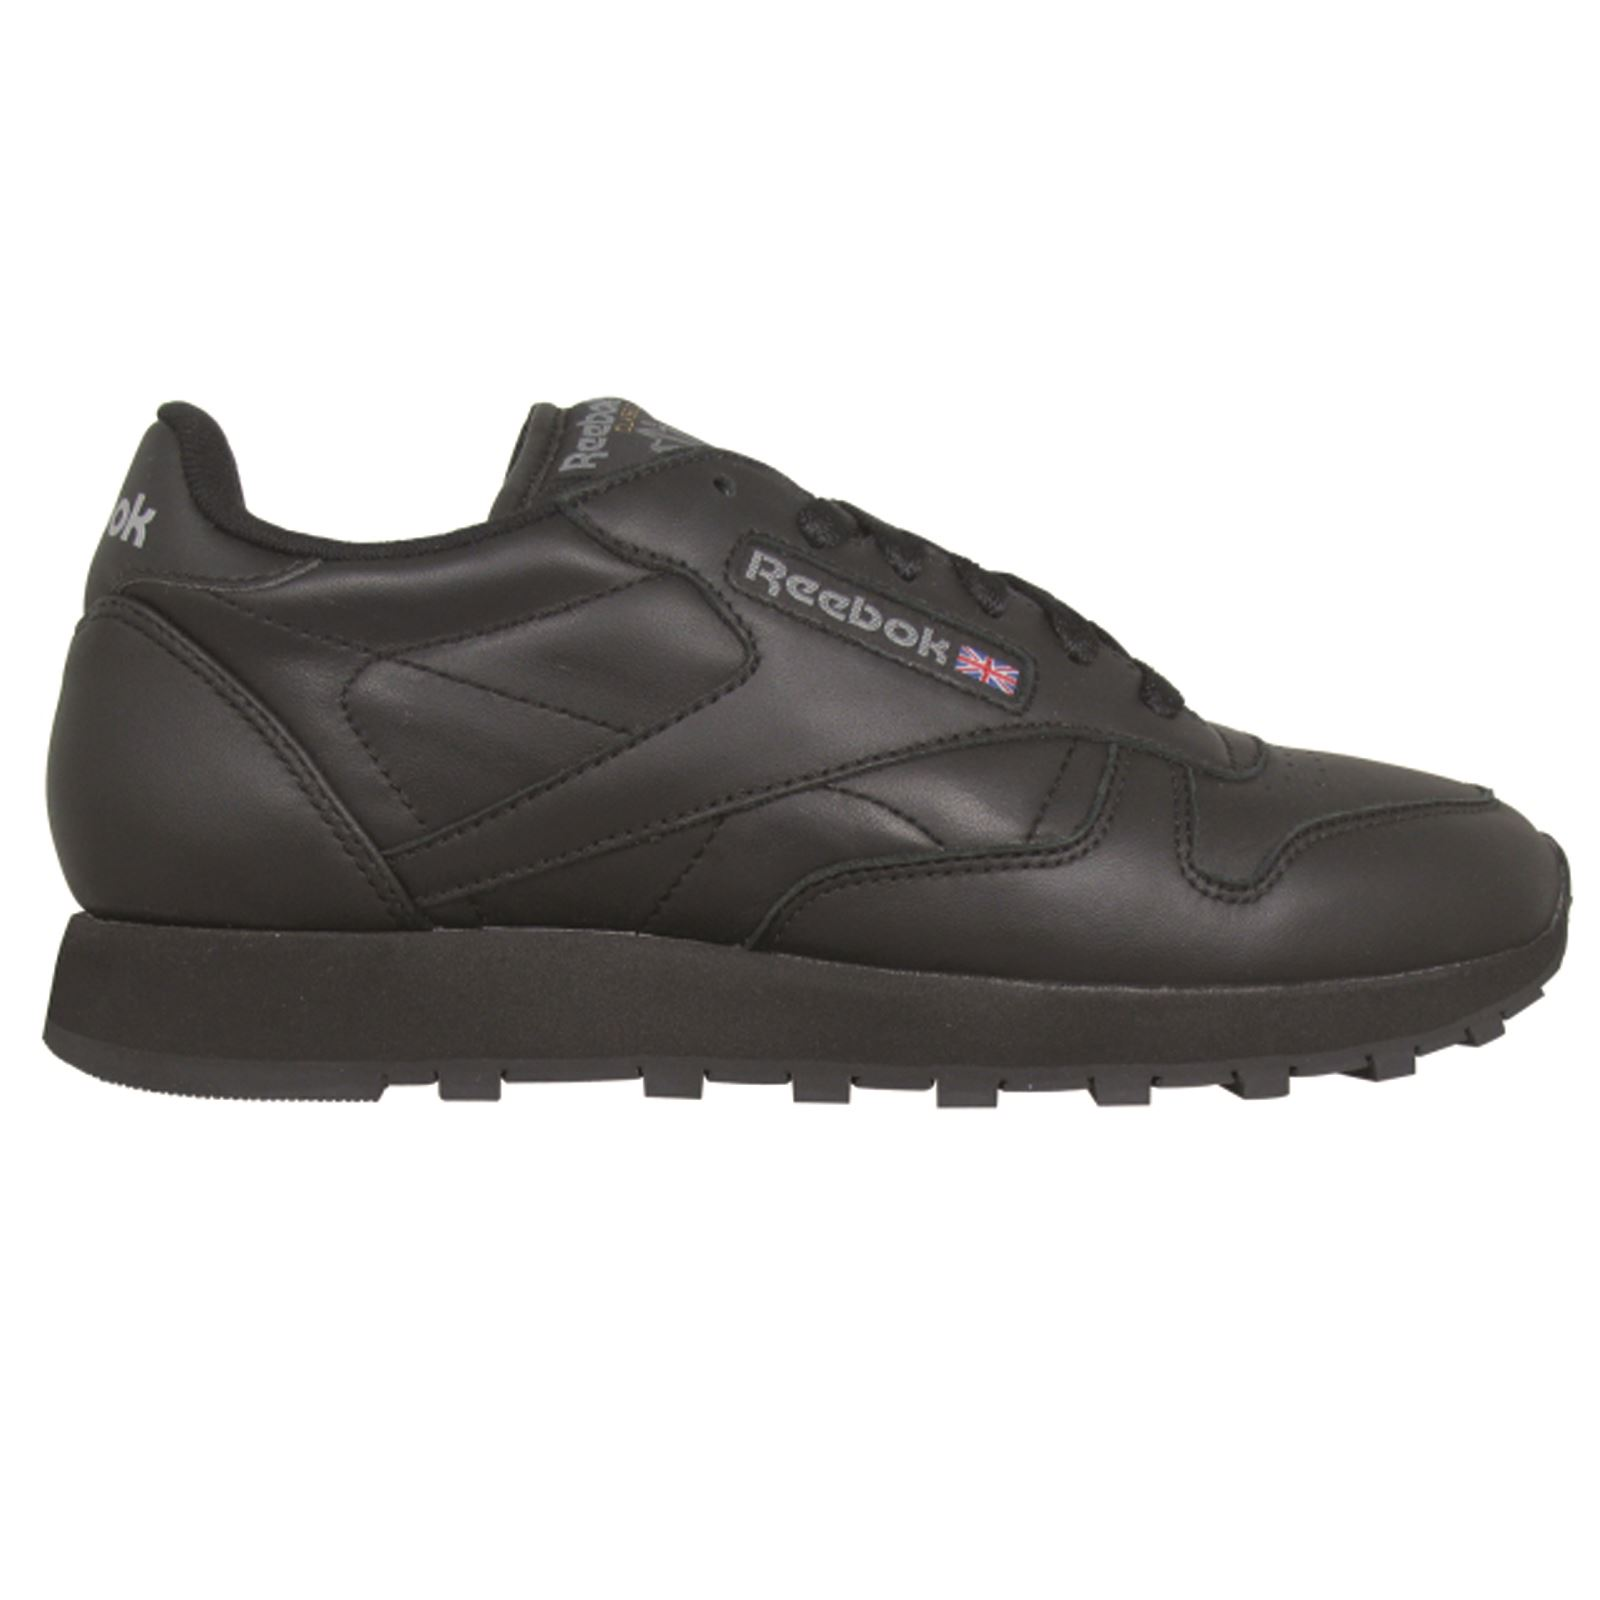 reebok classics classic lthr turnschuhe sneakers. Black Bedroom Furniture Sets. Home Design Ideas